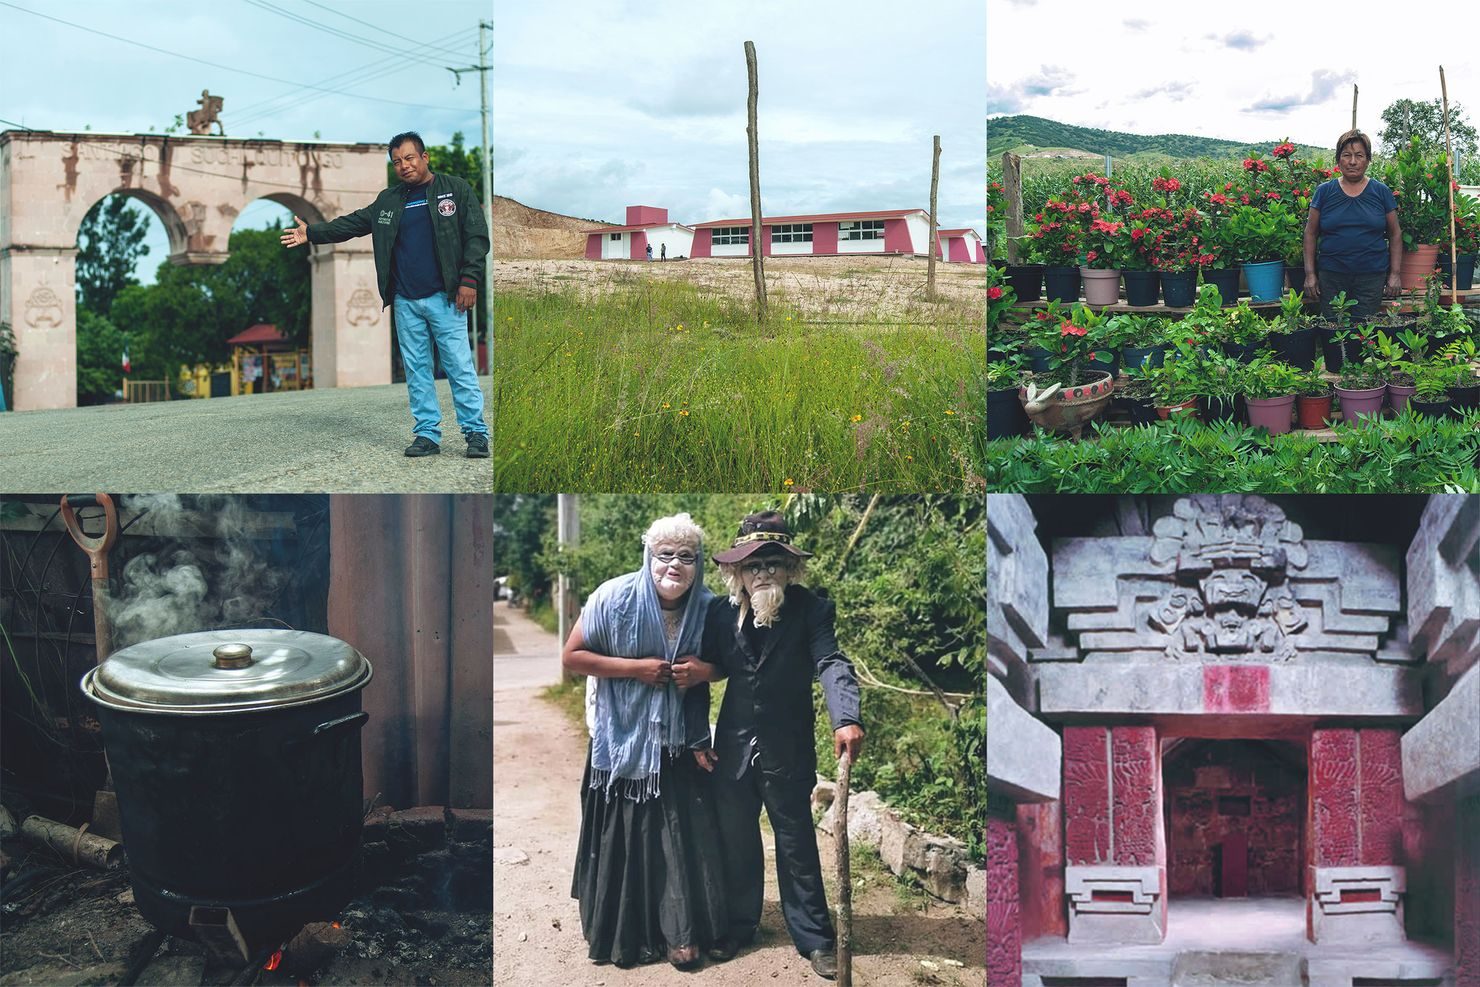 a collage of 6 images showing suchil's pink quarry arch, jose vasconcelos school, enoc's mother at her farm, stew cooking in a pot, costumed comparsa members, and cerro de la campana archeological site